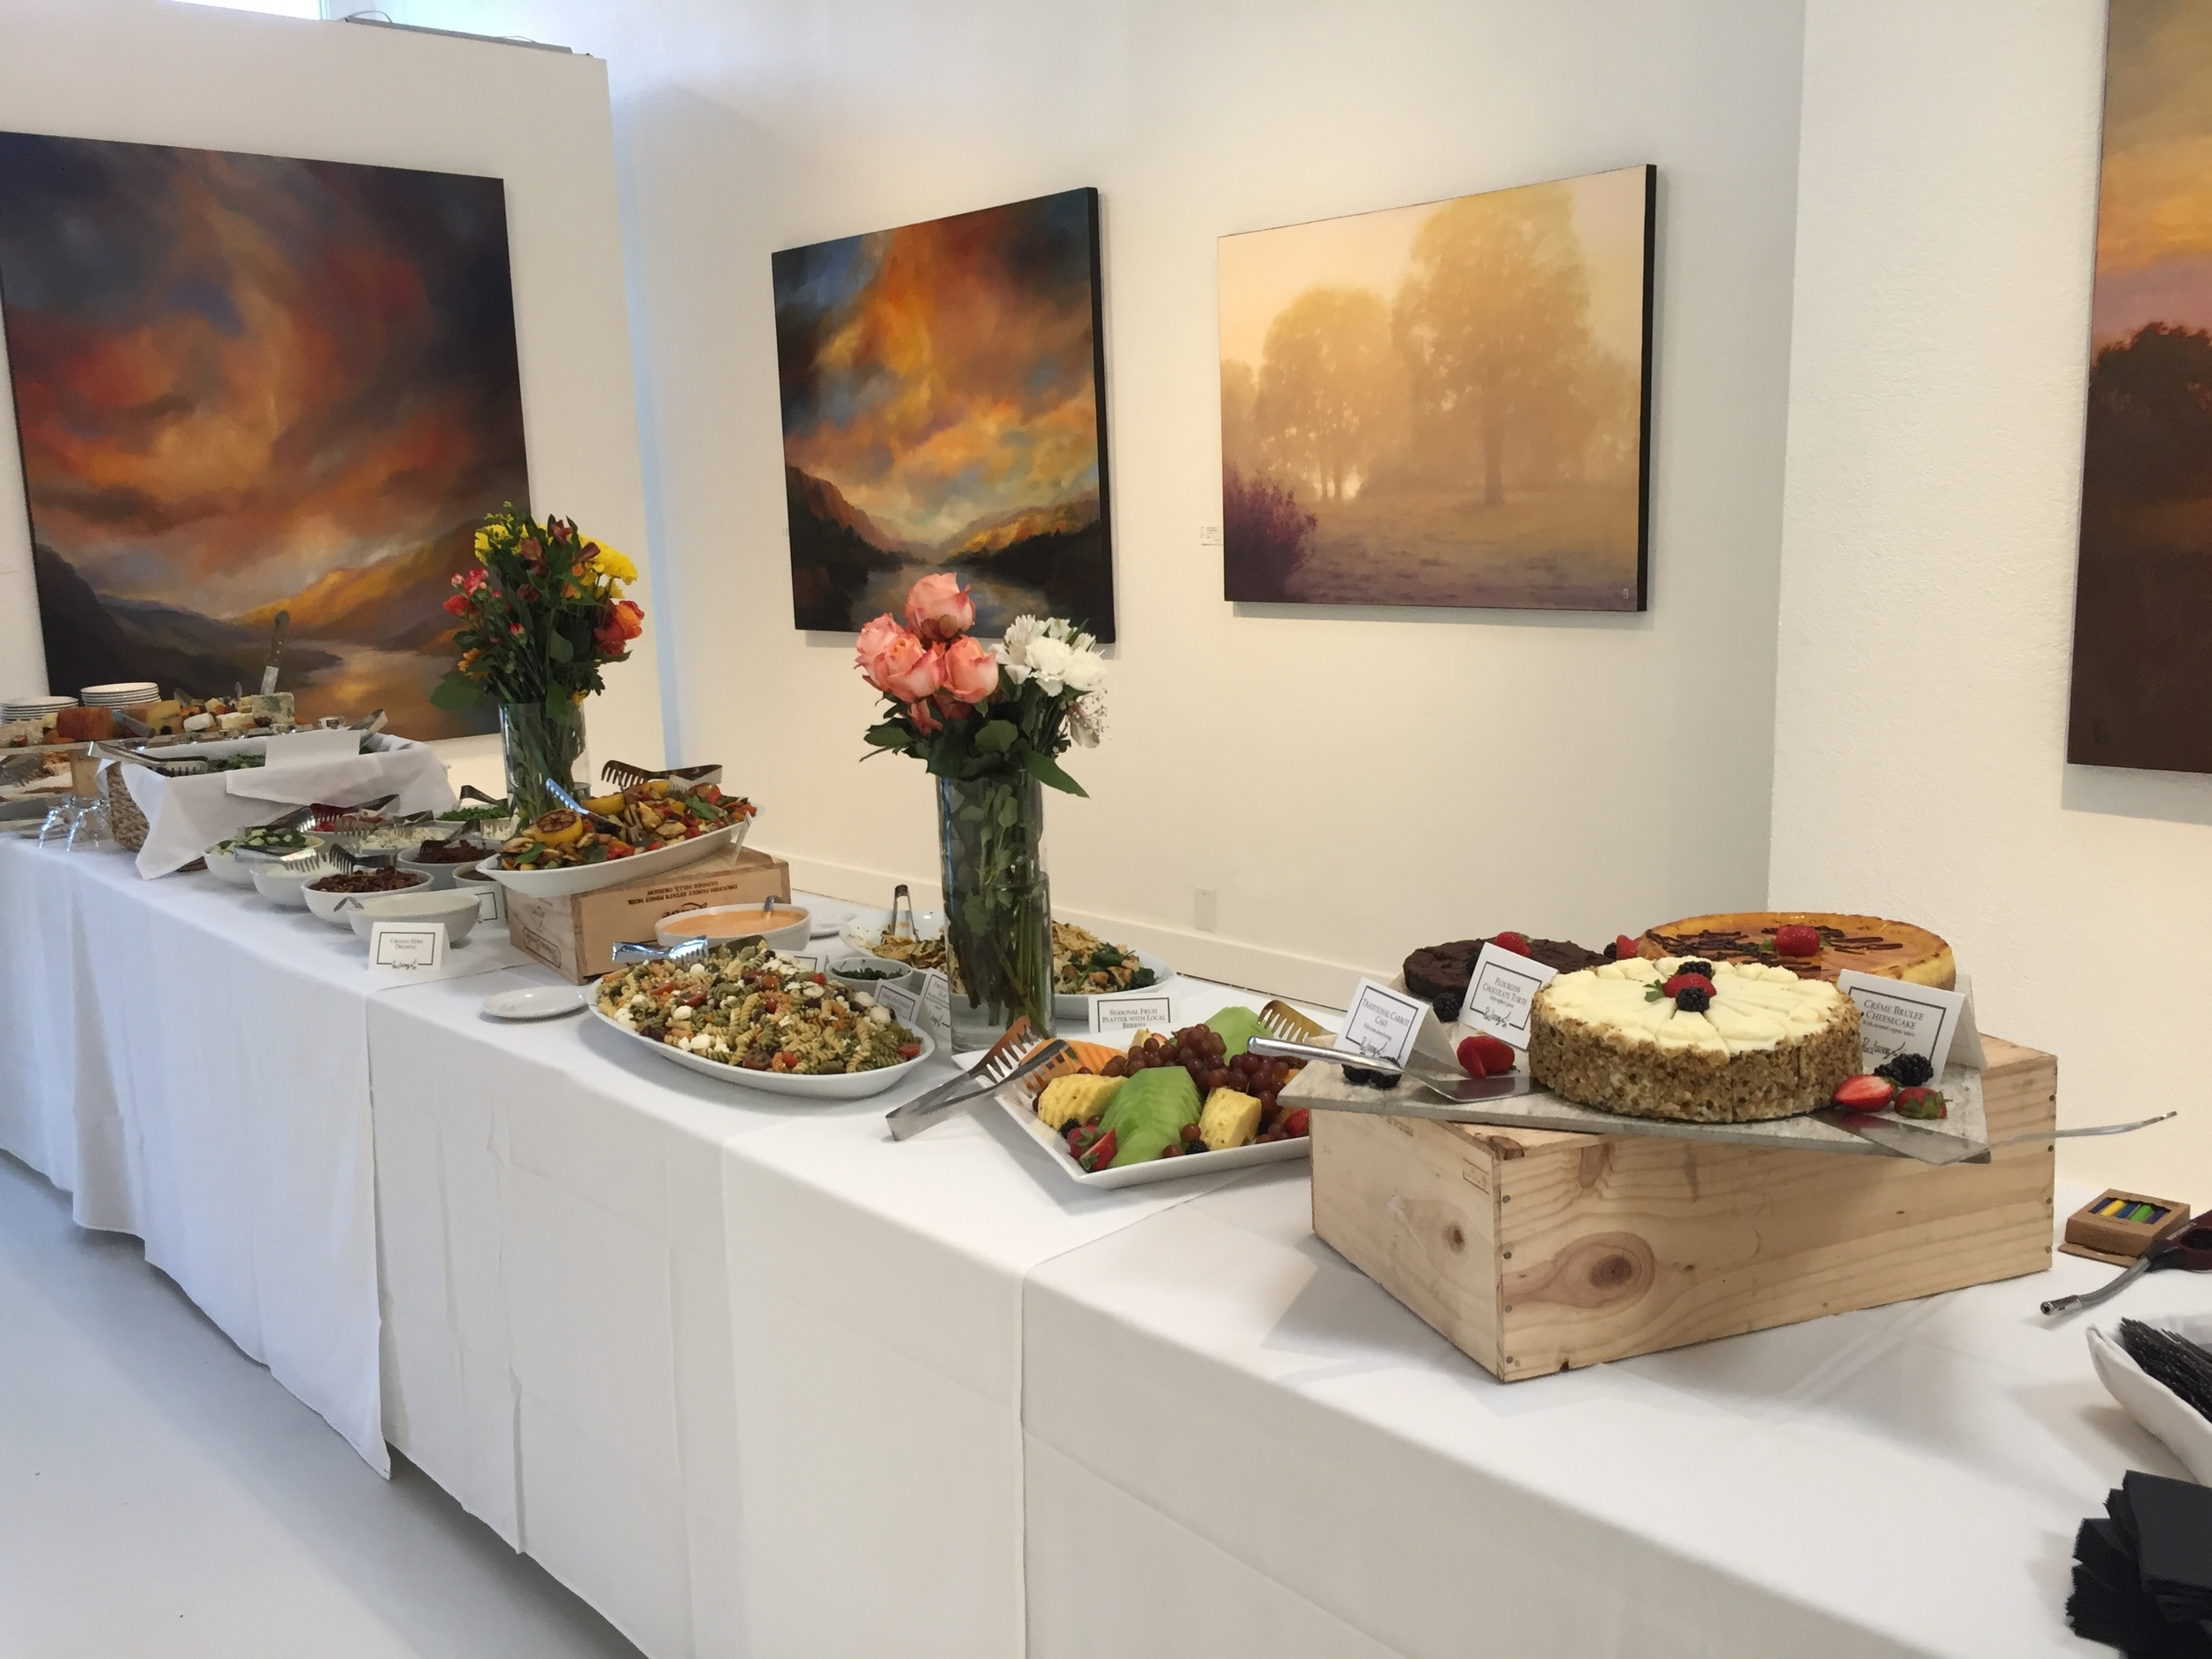 One of many ways Gallery 903 can be set up to host your next event!